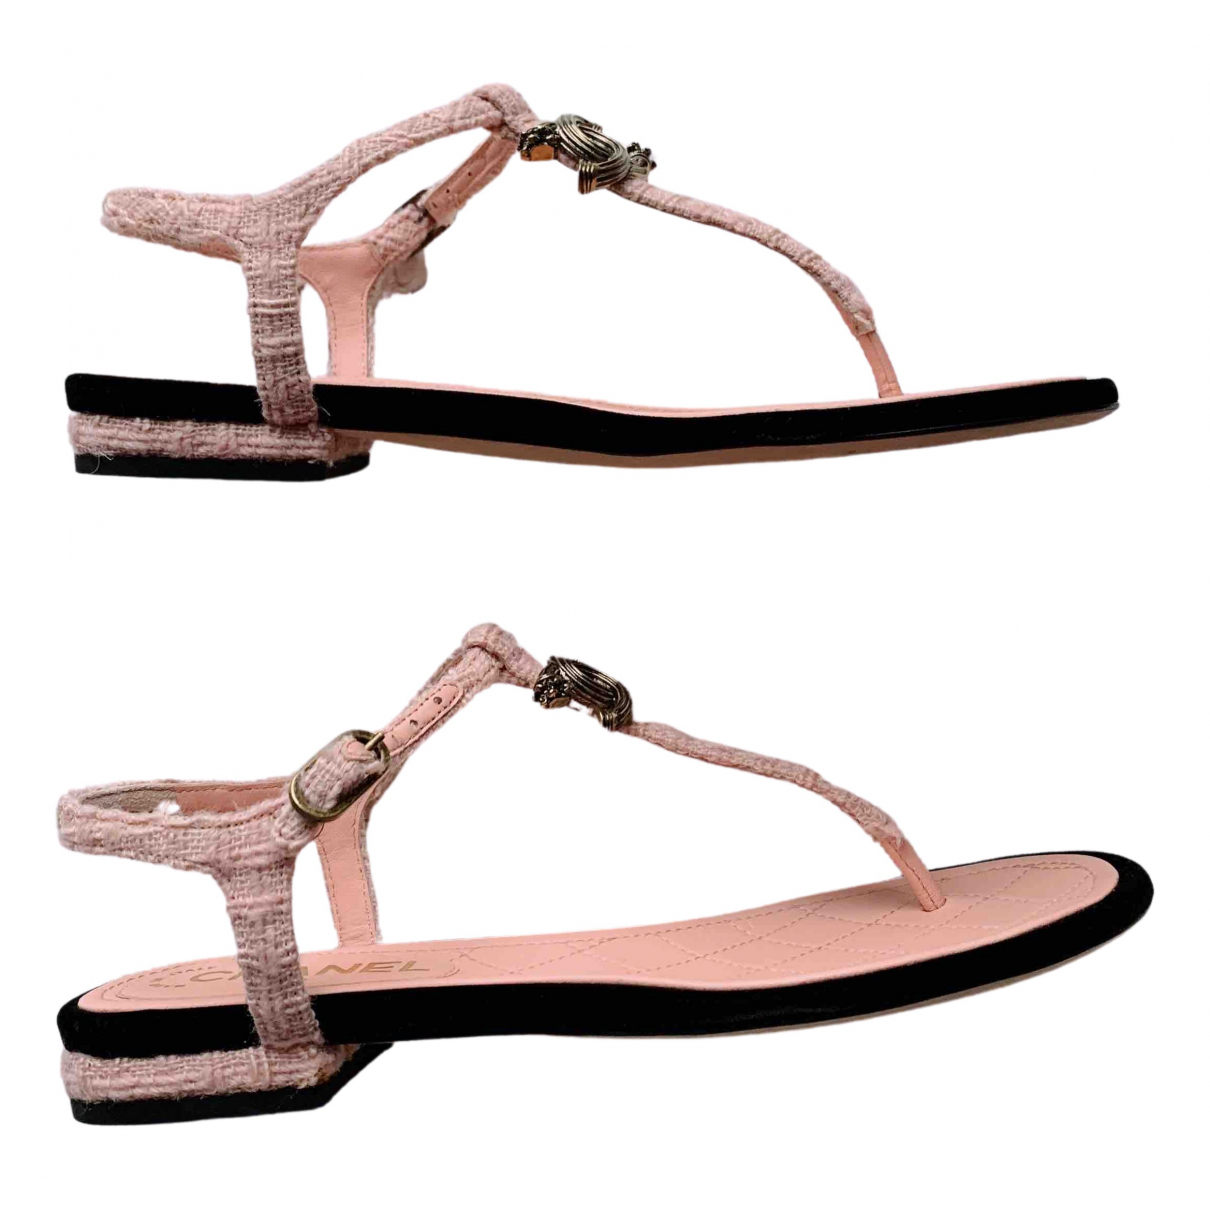 Chanel N Pink Leather Sandals for Women 36.5 EU